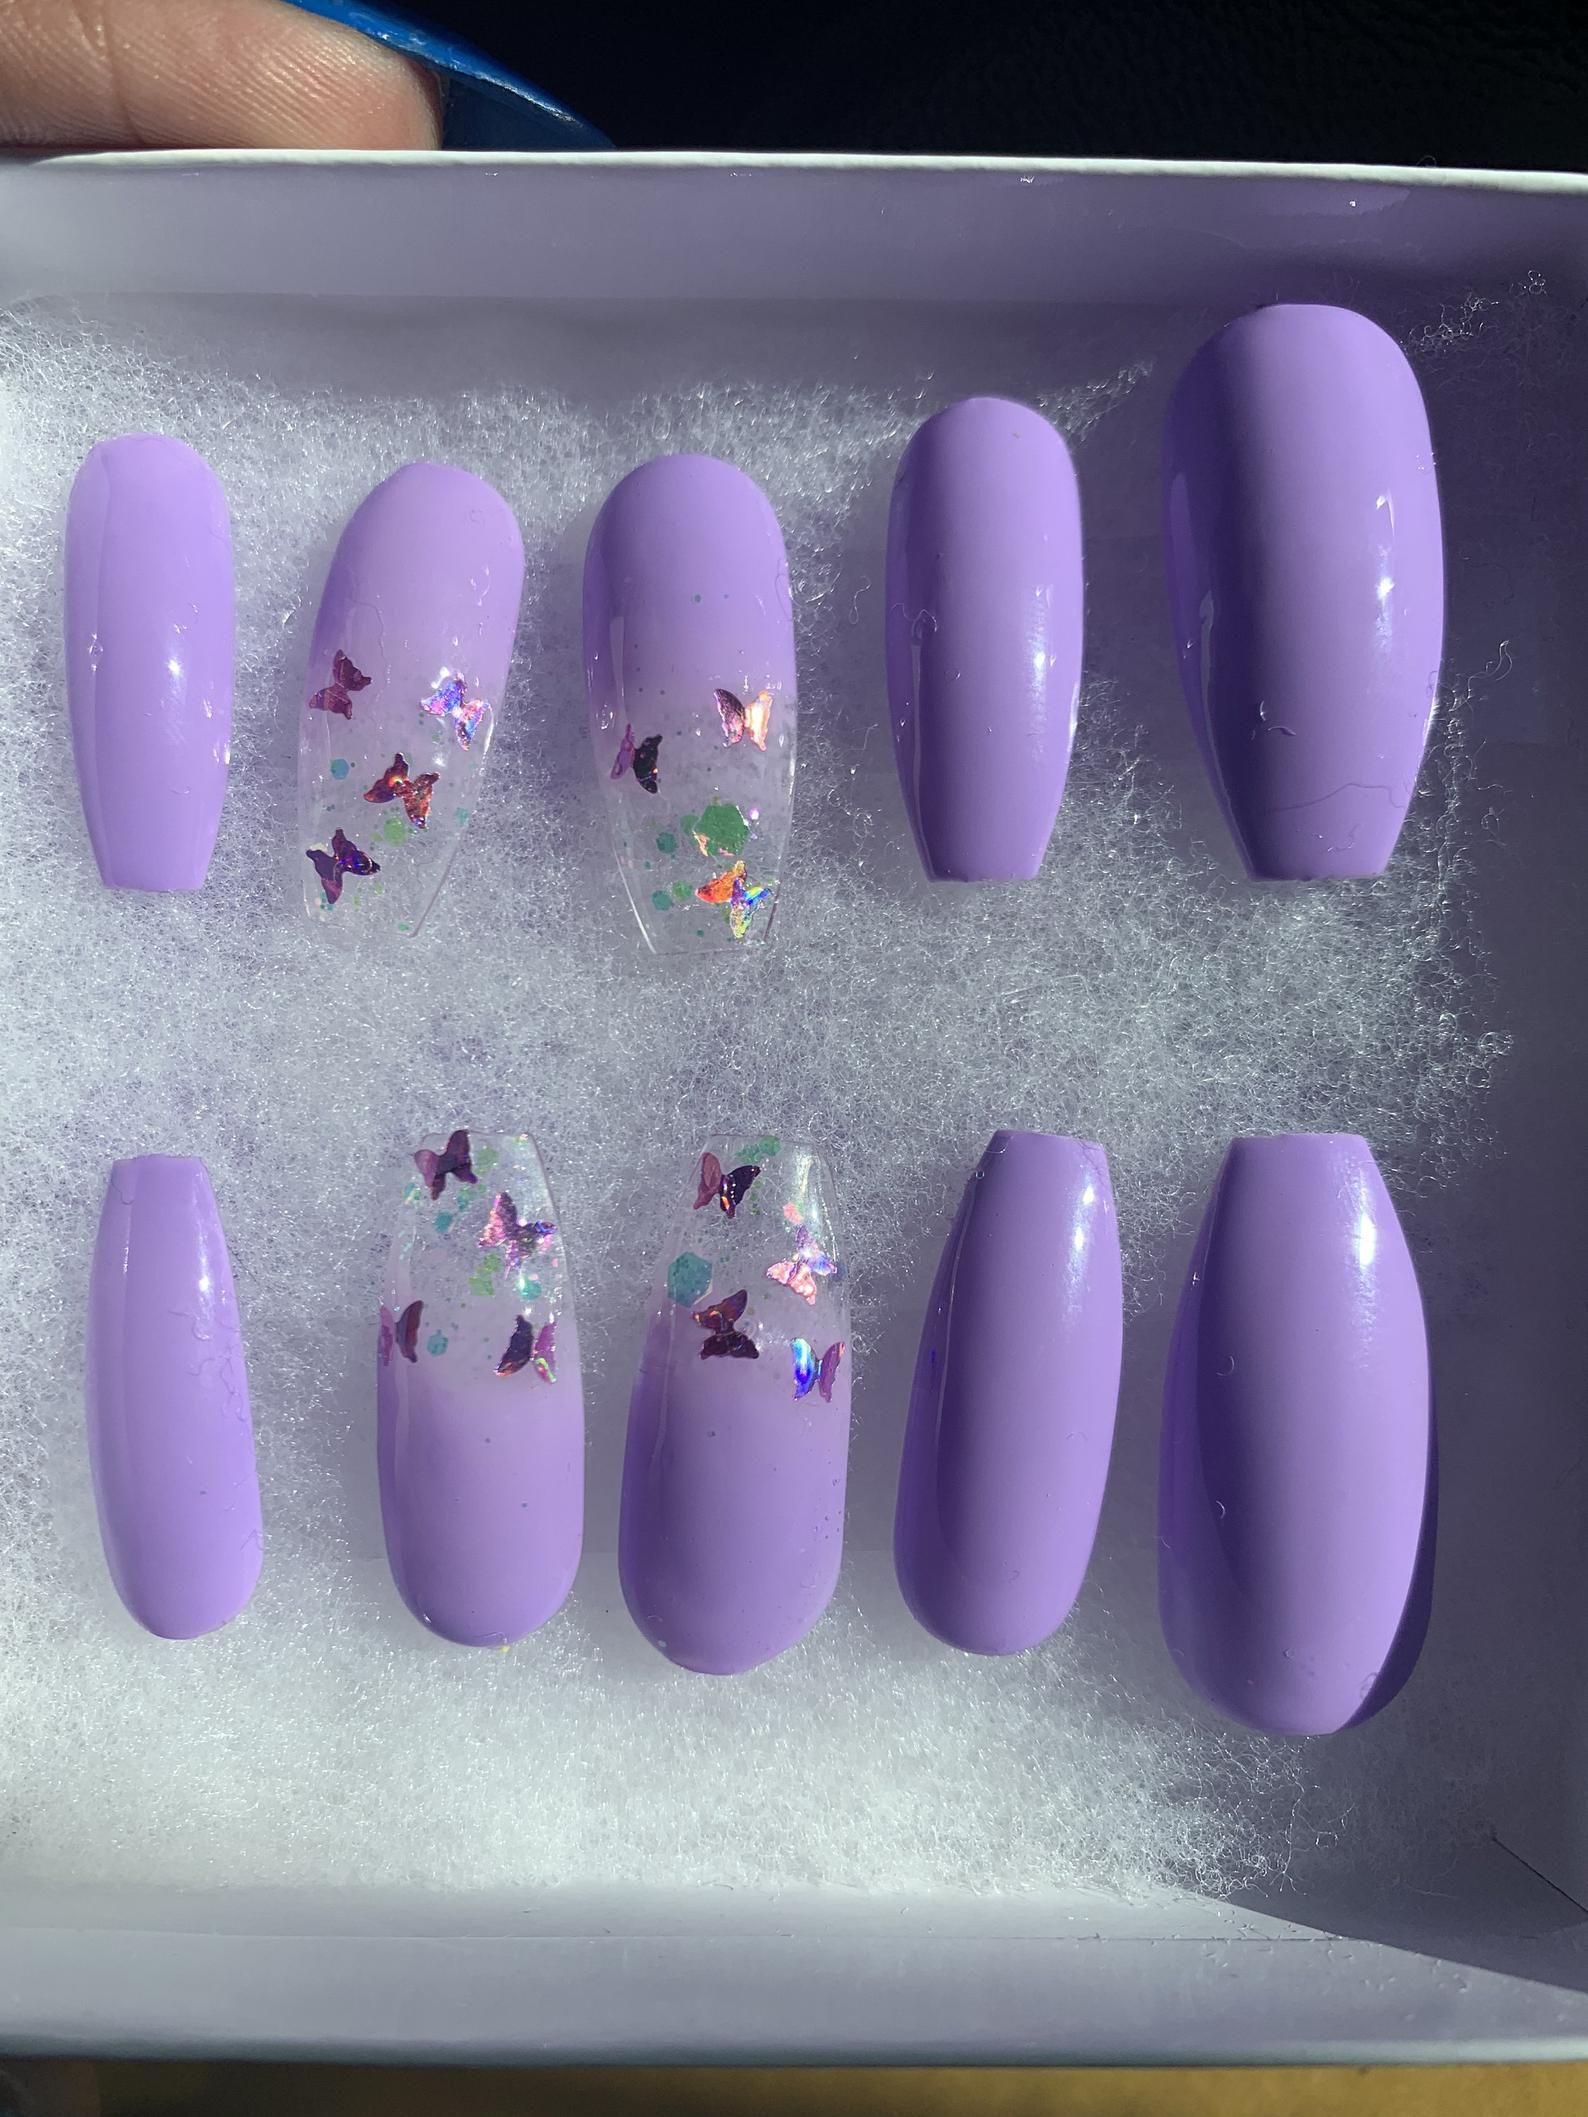 Butterfly Nails Holo Nails Coffin Nails Stiletto Nails Etsy In 2020 Butterfly Nail Holo Nails Coffin Nails Designs